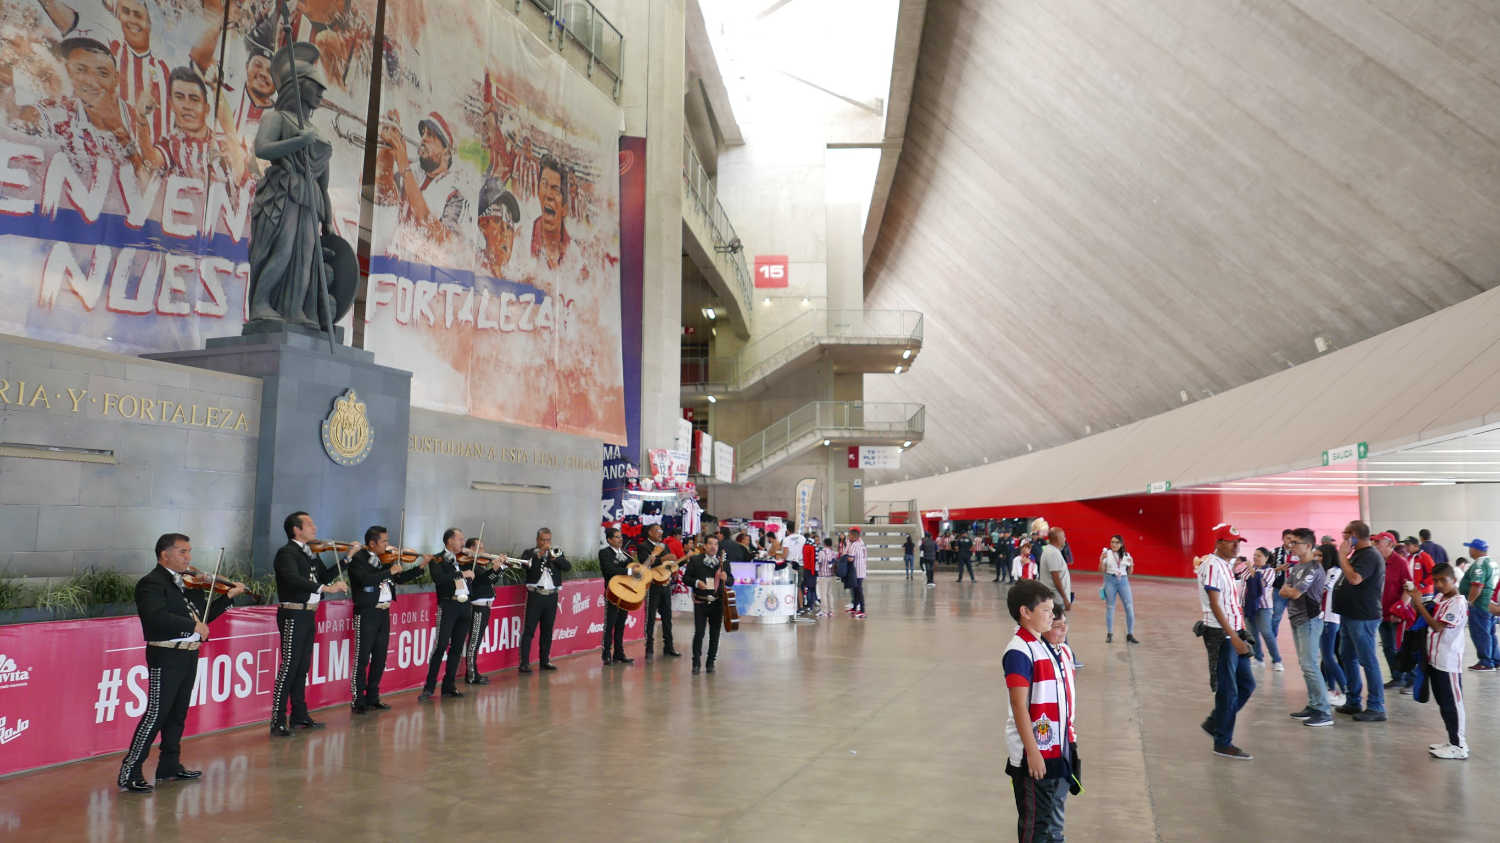 Band playing mariachi music on the concourse of Chivas stadium in Guadalajara